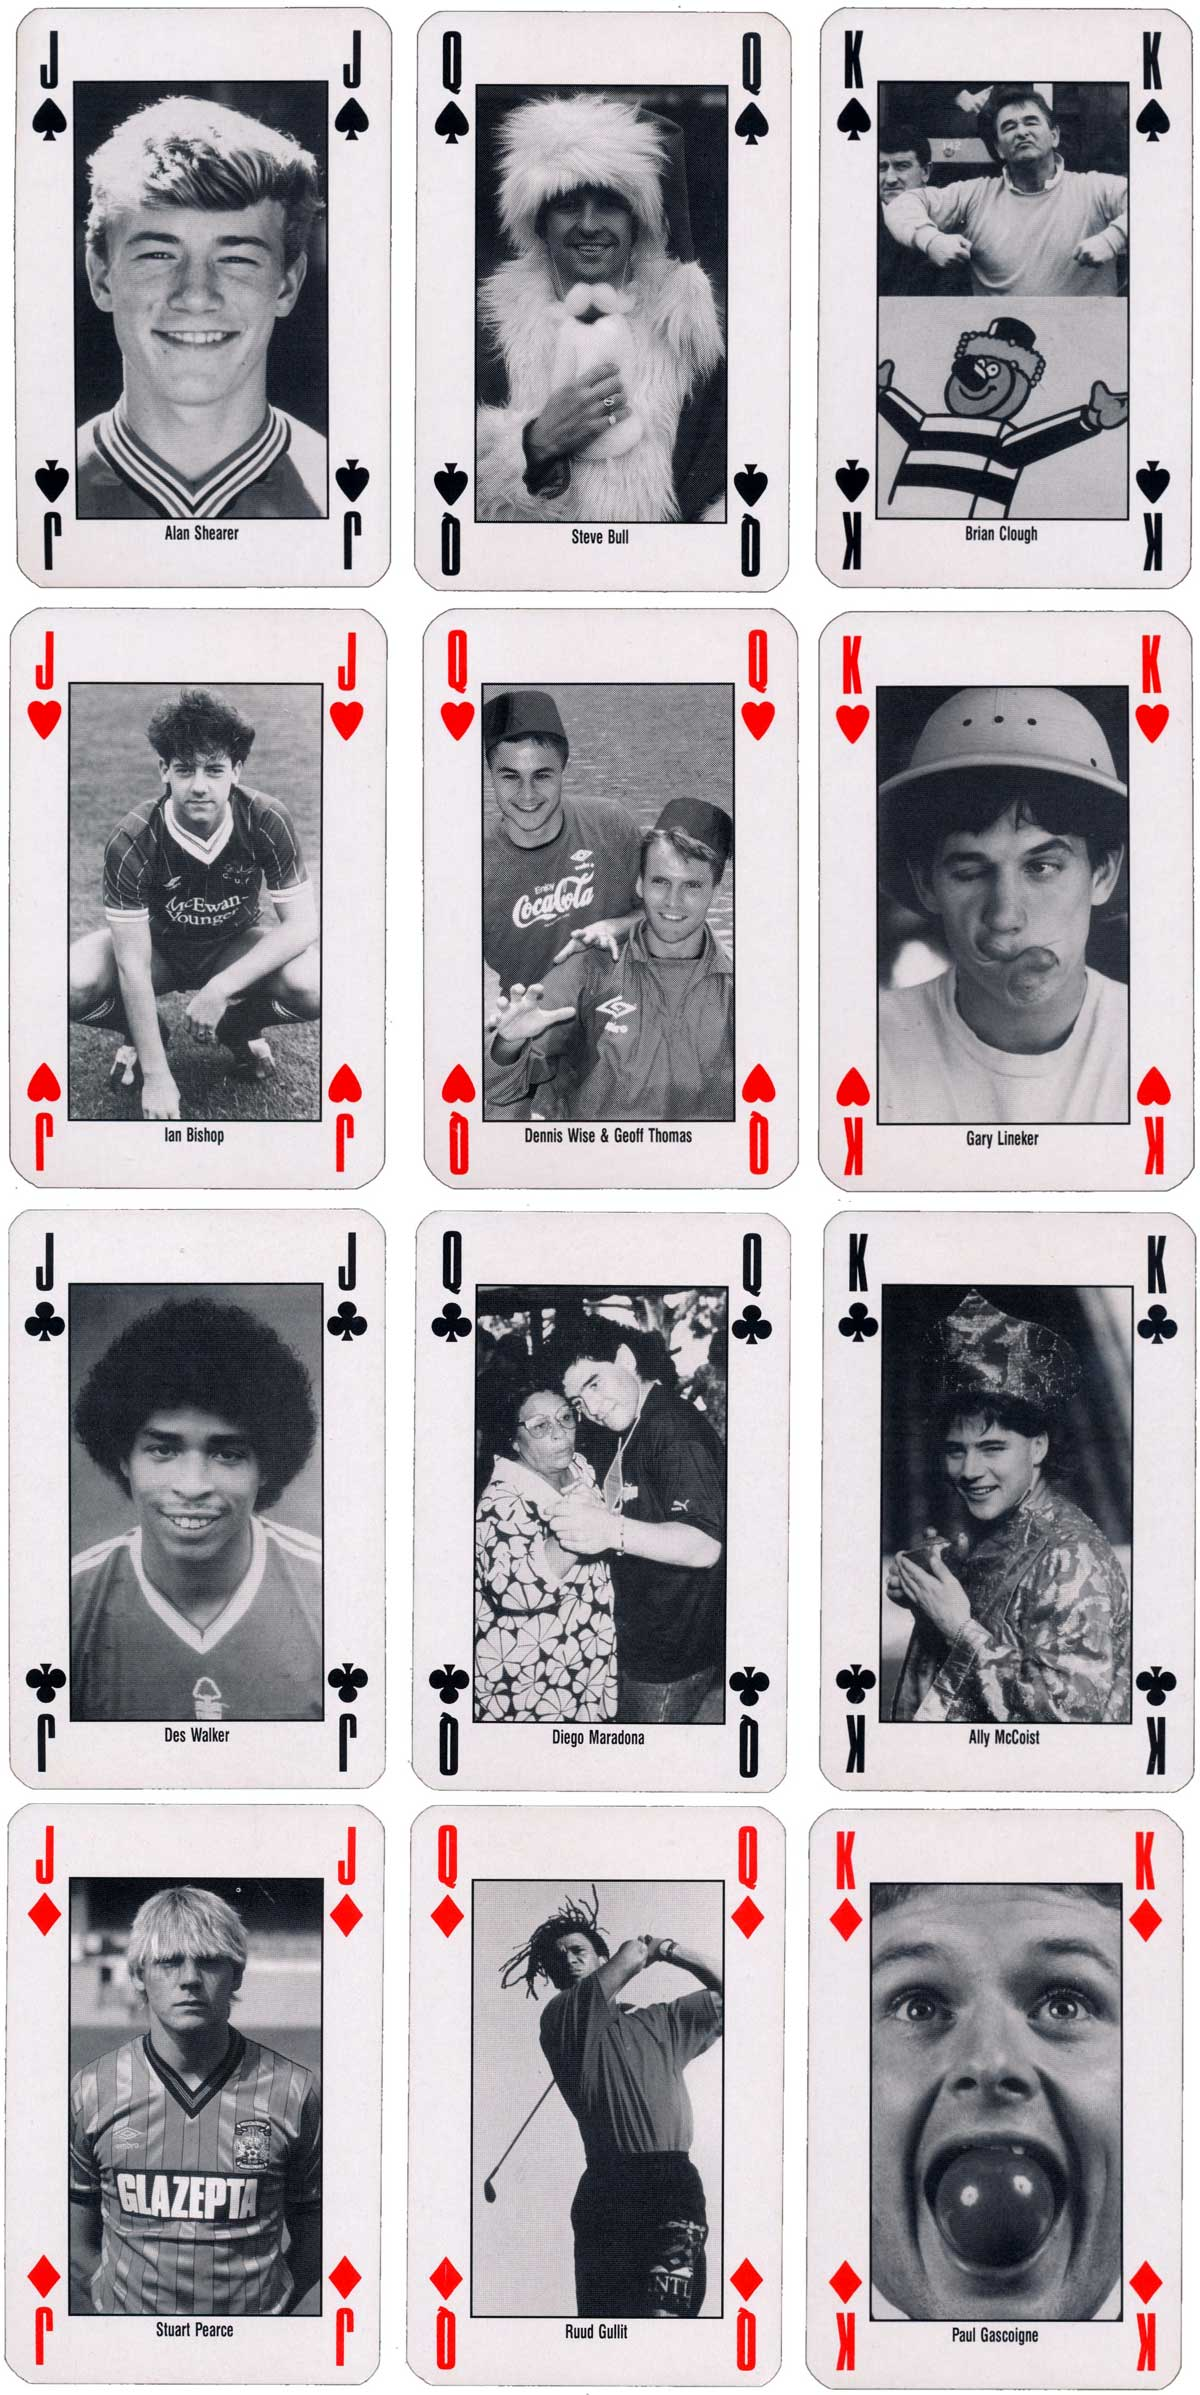 90 Minutes Playing Cards by IPC Magazines 1993